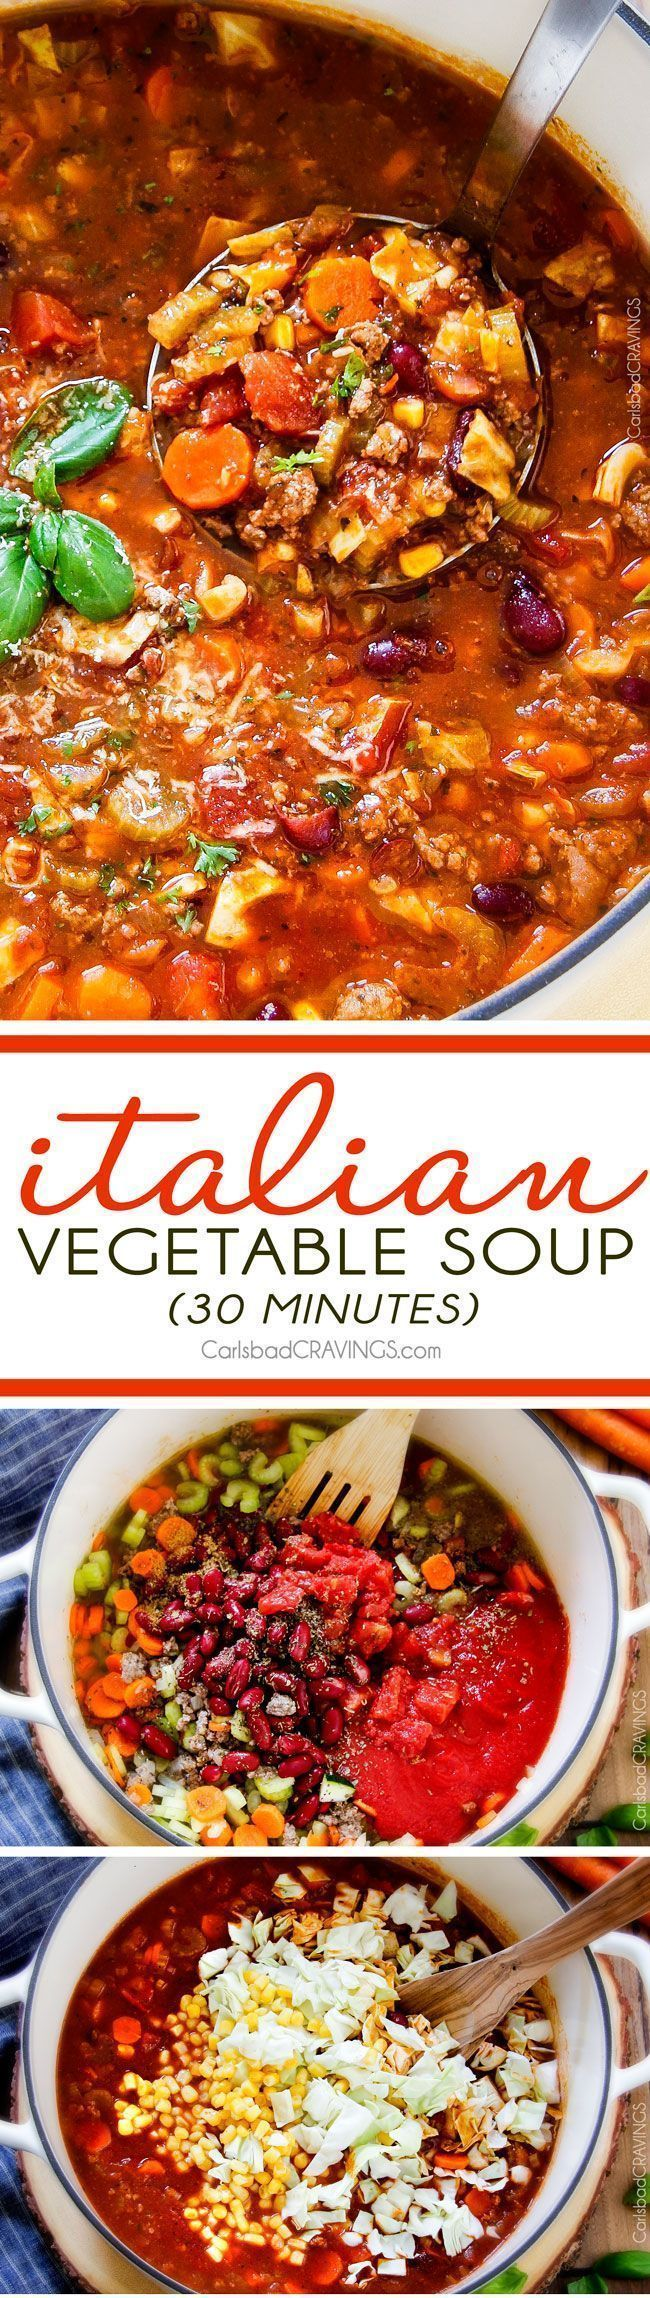 30 minute Italian Vegetable Soup – This is the BEST version I have tried – my family begs me to make this soup!  hearty, comforting chunks of ground beef and veggies in an Italian spiced tomato broth  - SO good and easy!  via /carlsbadcraving/ #bestbeefbroth